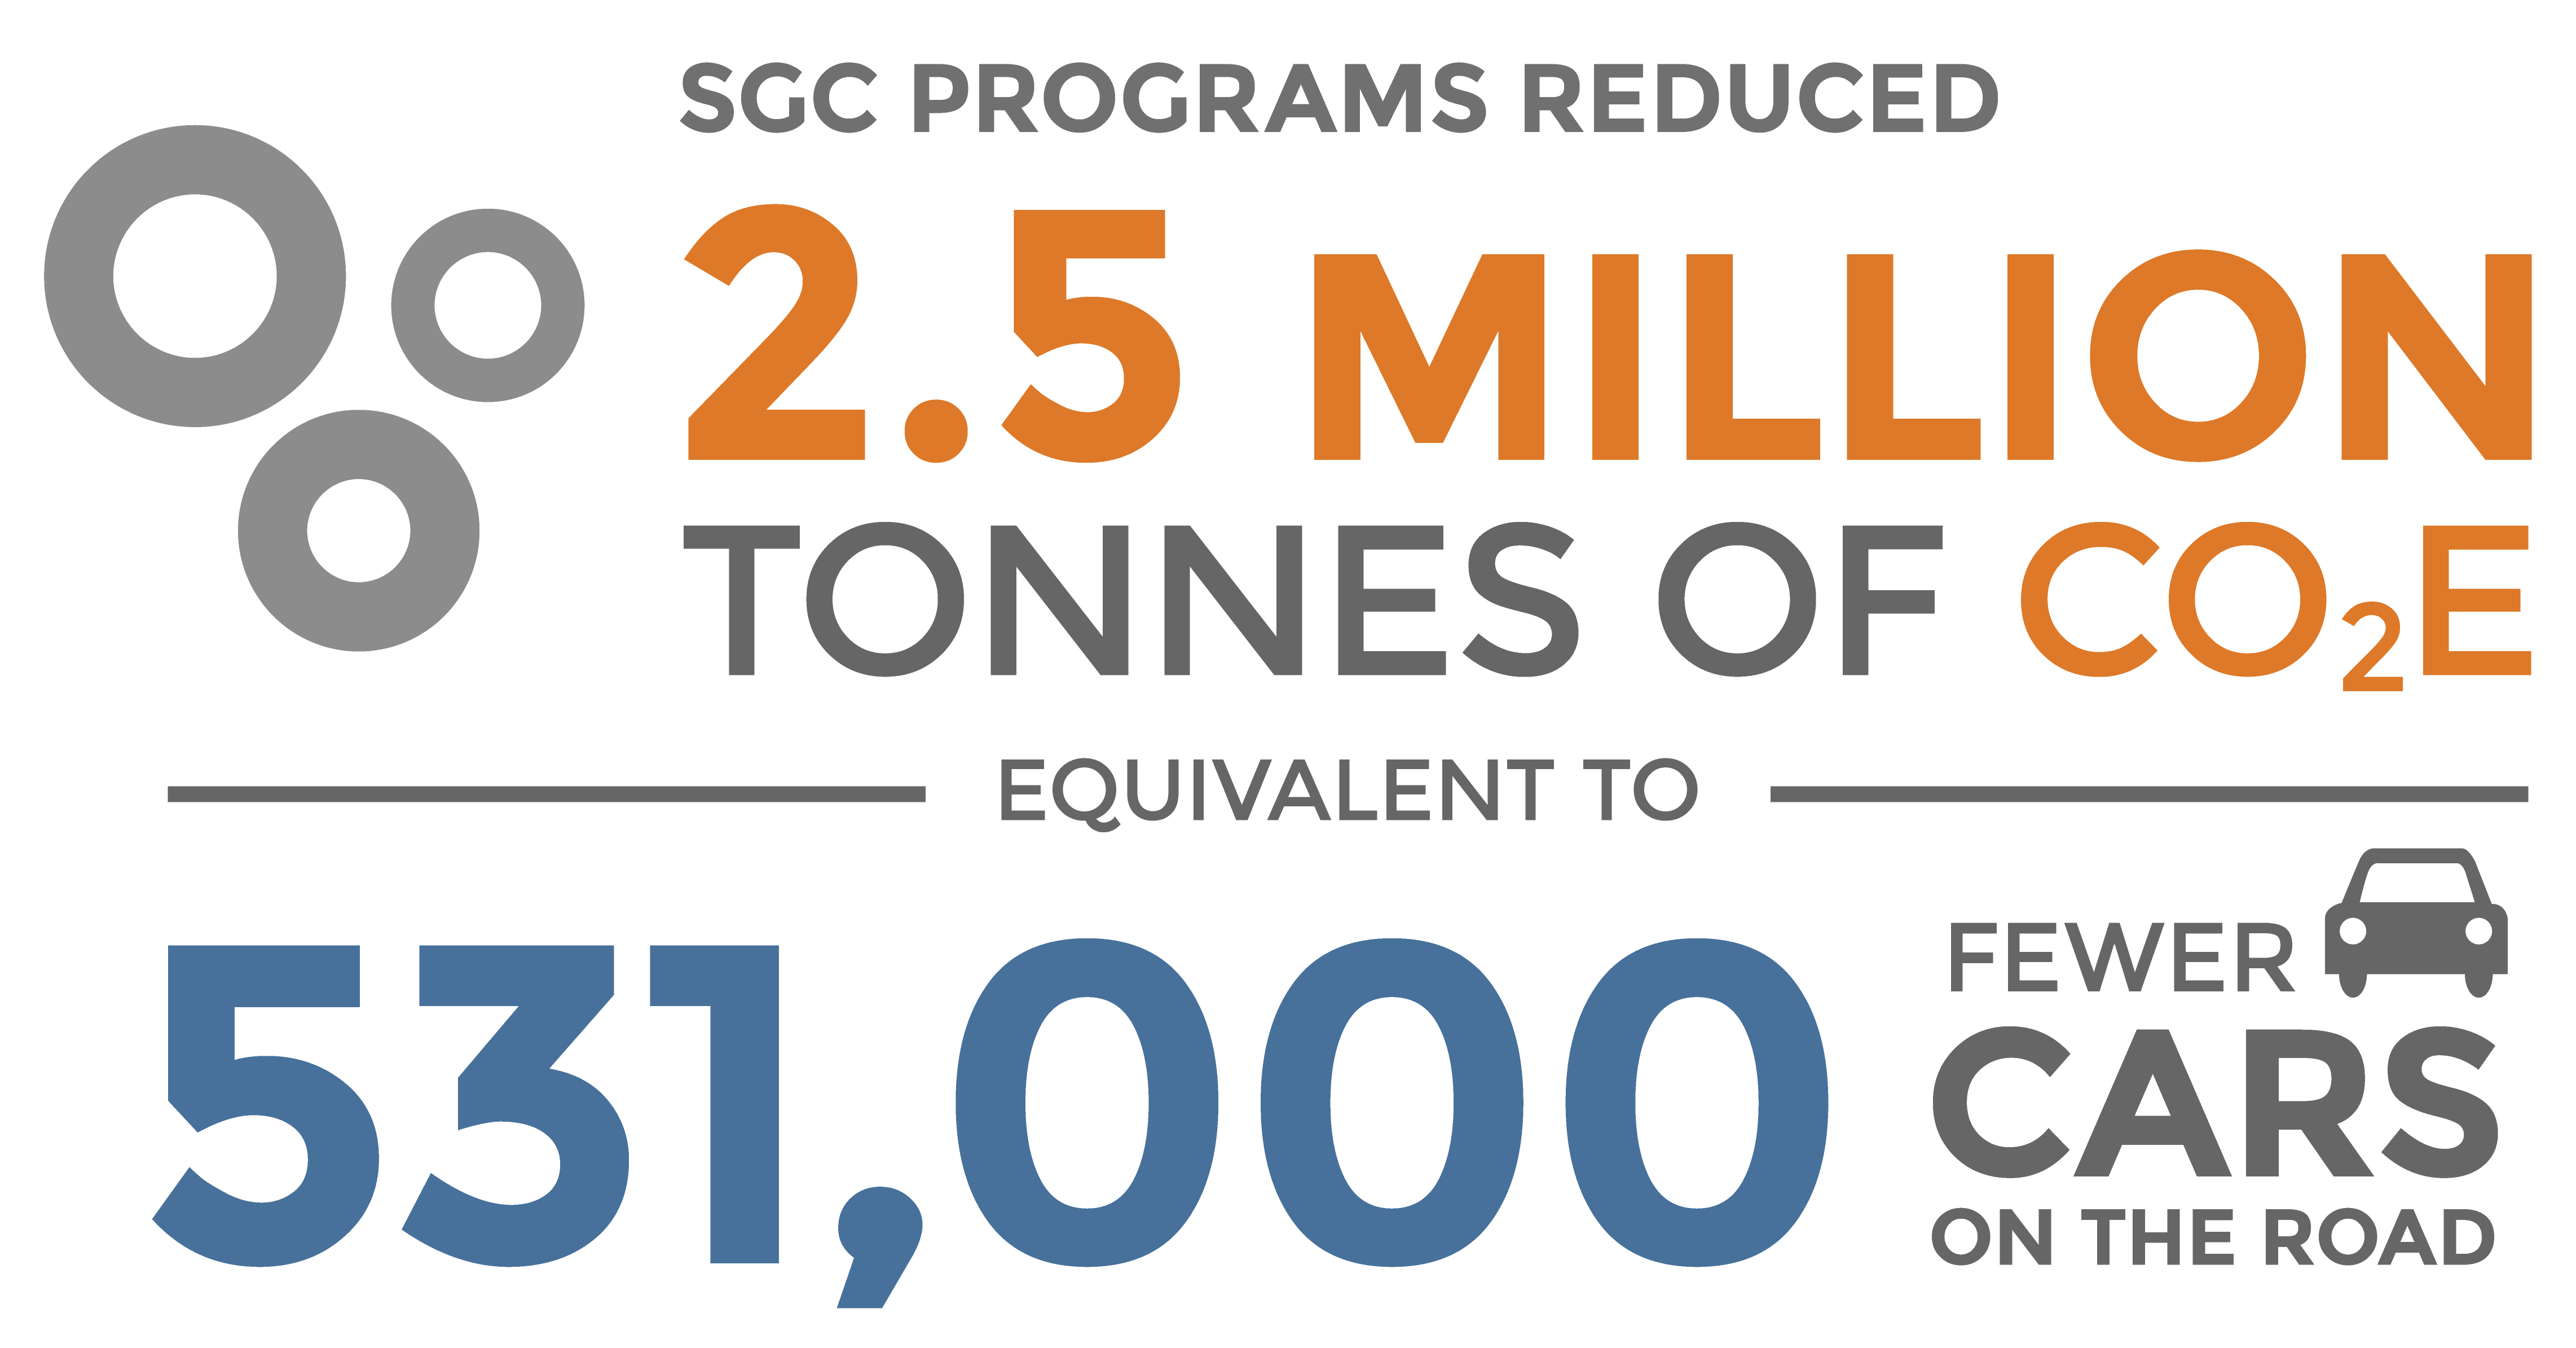 SGC programs have reduced 1.3 million tonnes of CO2E equivalent to 278,373 fewer cars on the road.